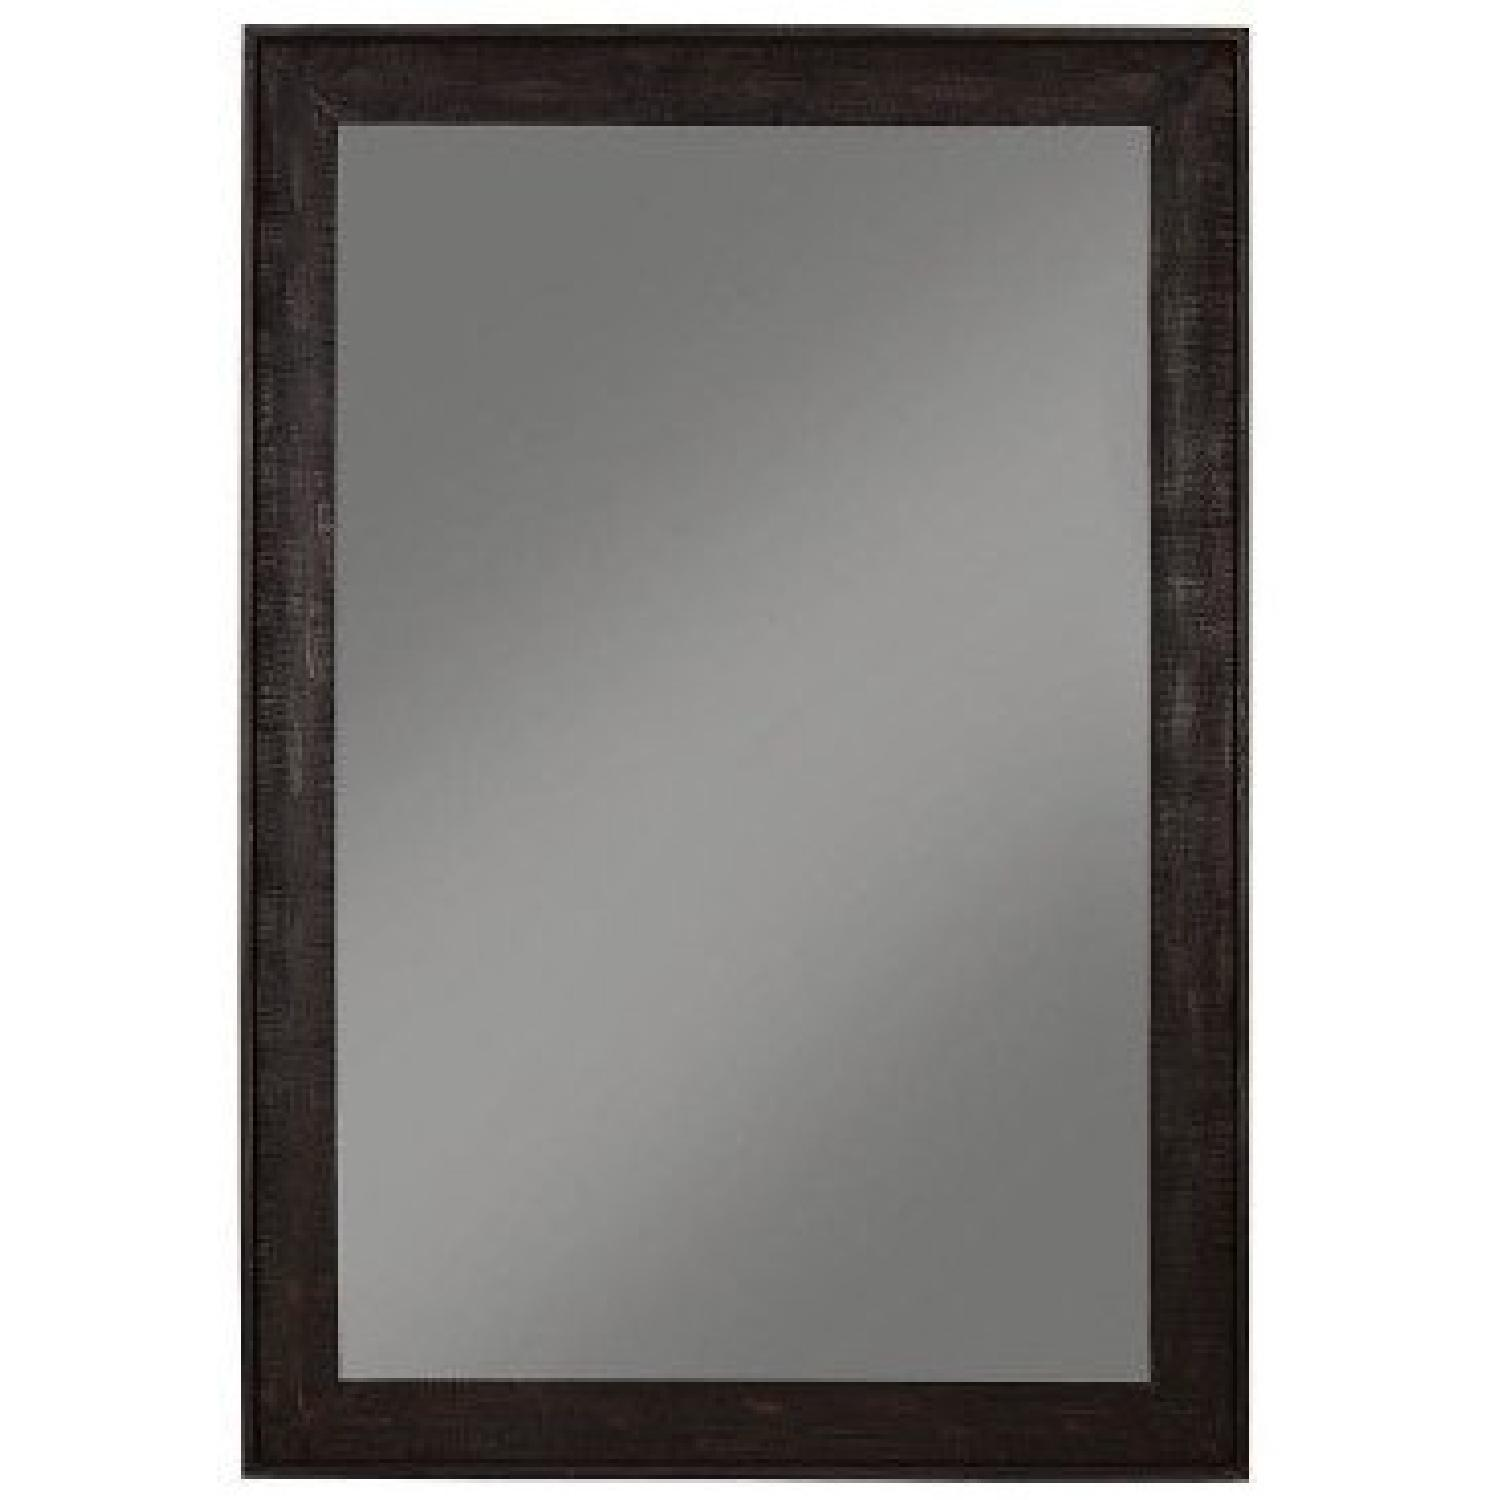 Out-Sized Floor Mirror w/ Distressed Black Frame